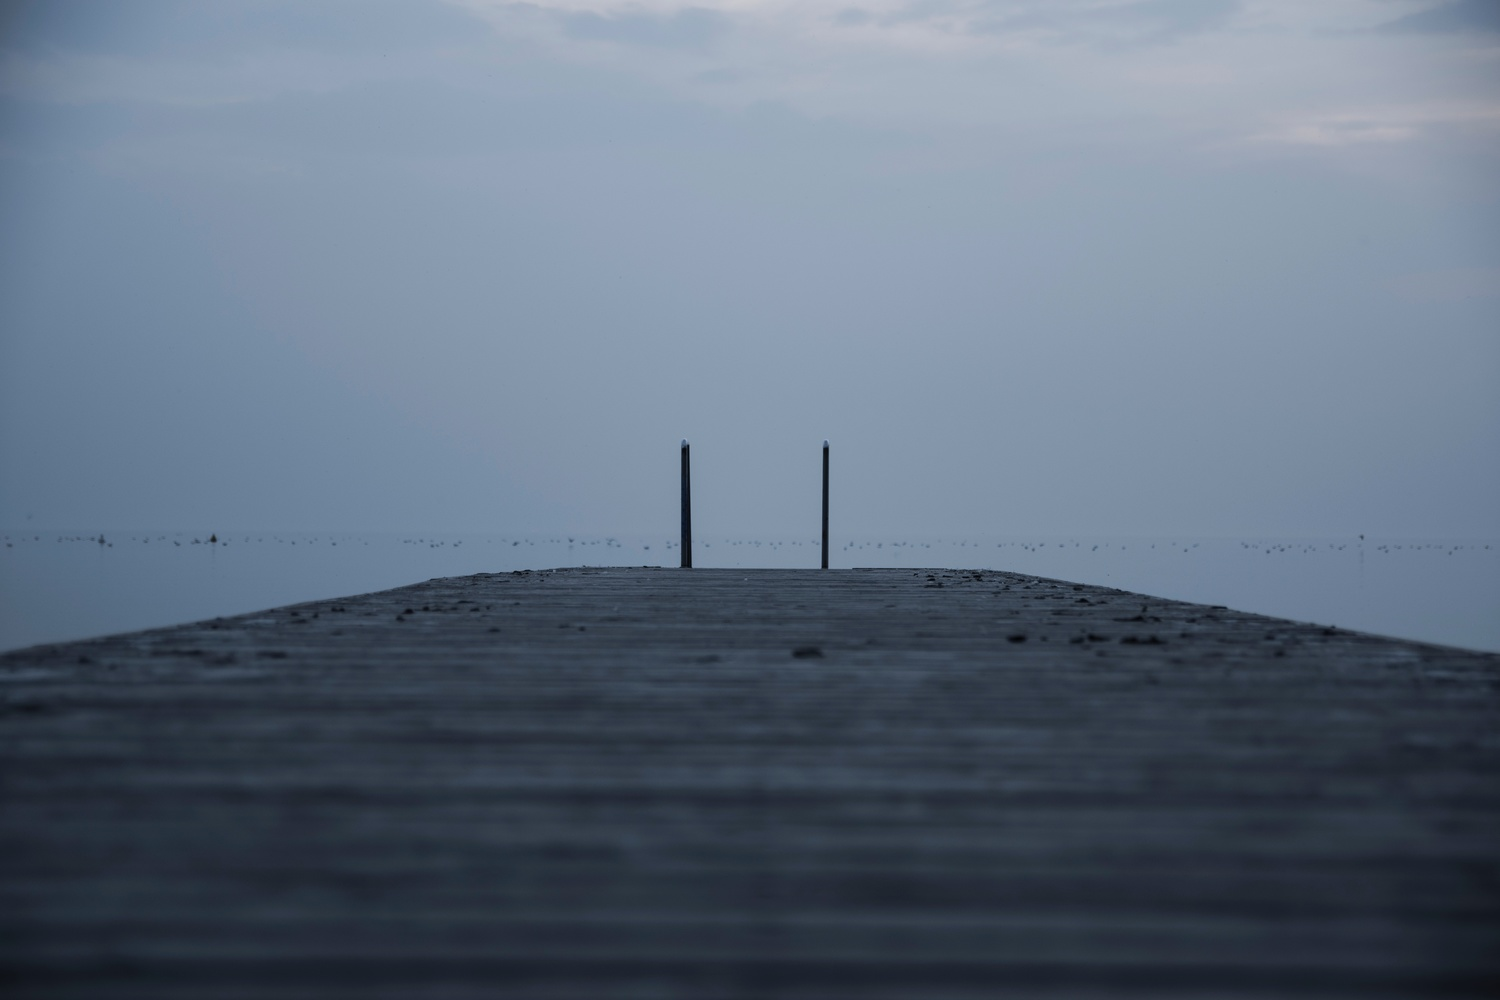 an ant's eye view looking out to the water from of a dock on a gloomy, foggy day